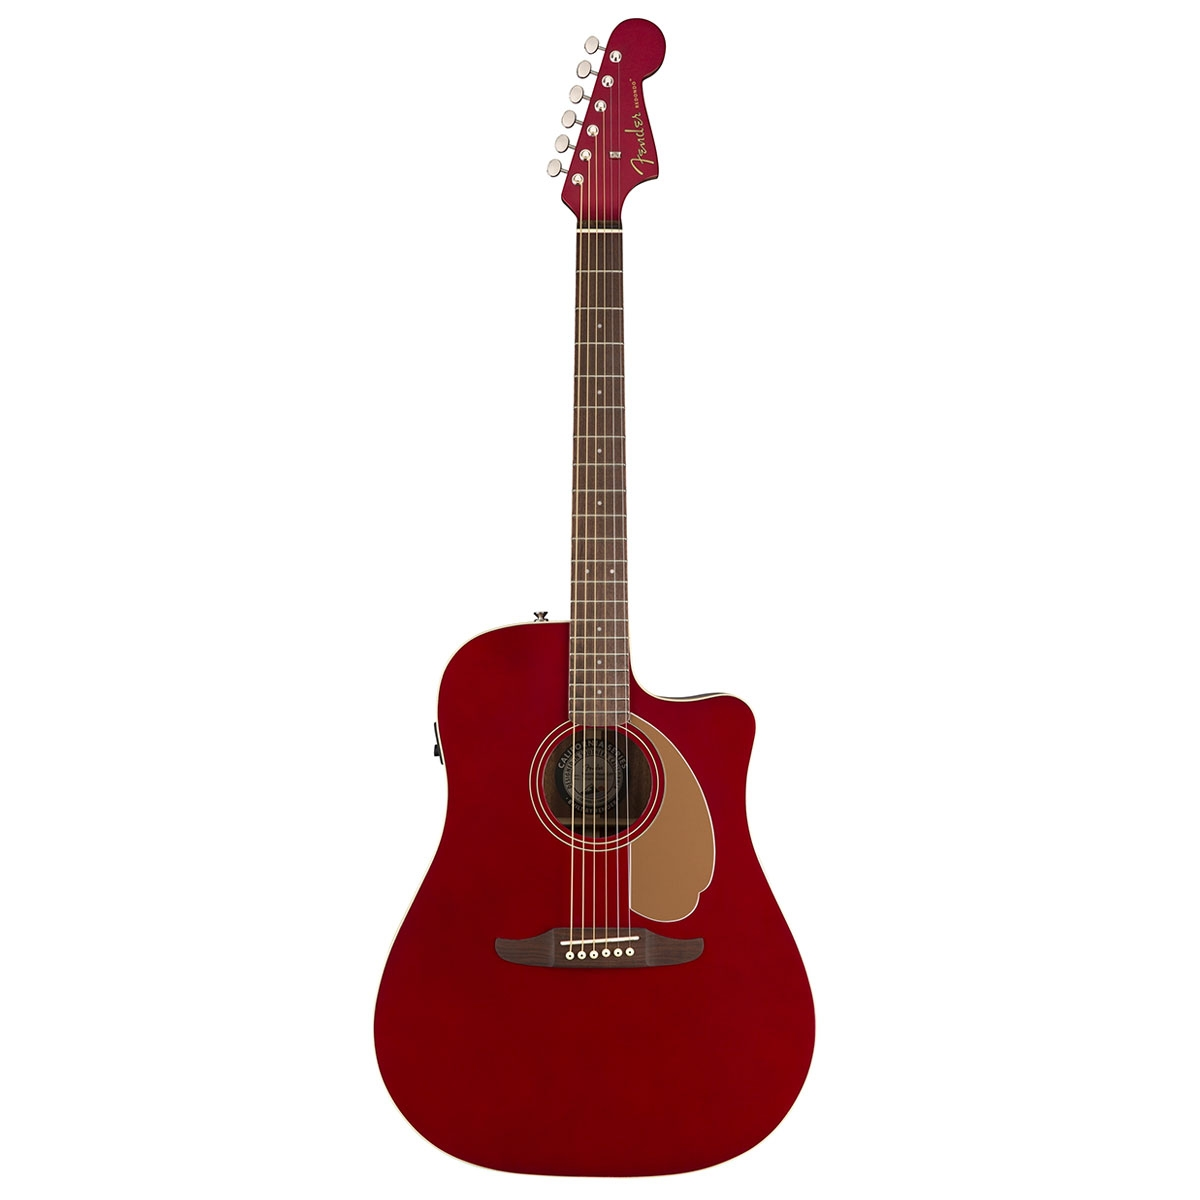 Fender - Redondo Player - Candy Apple Red